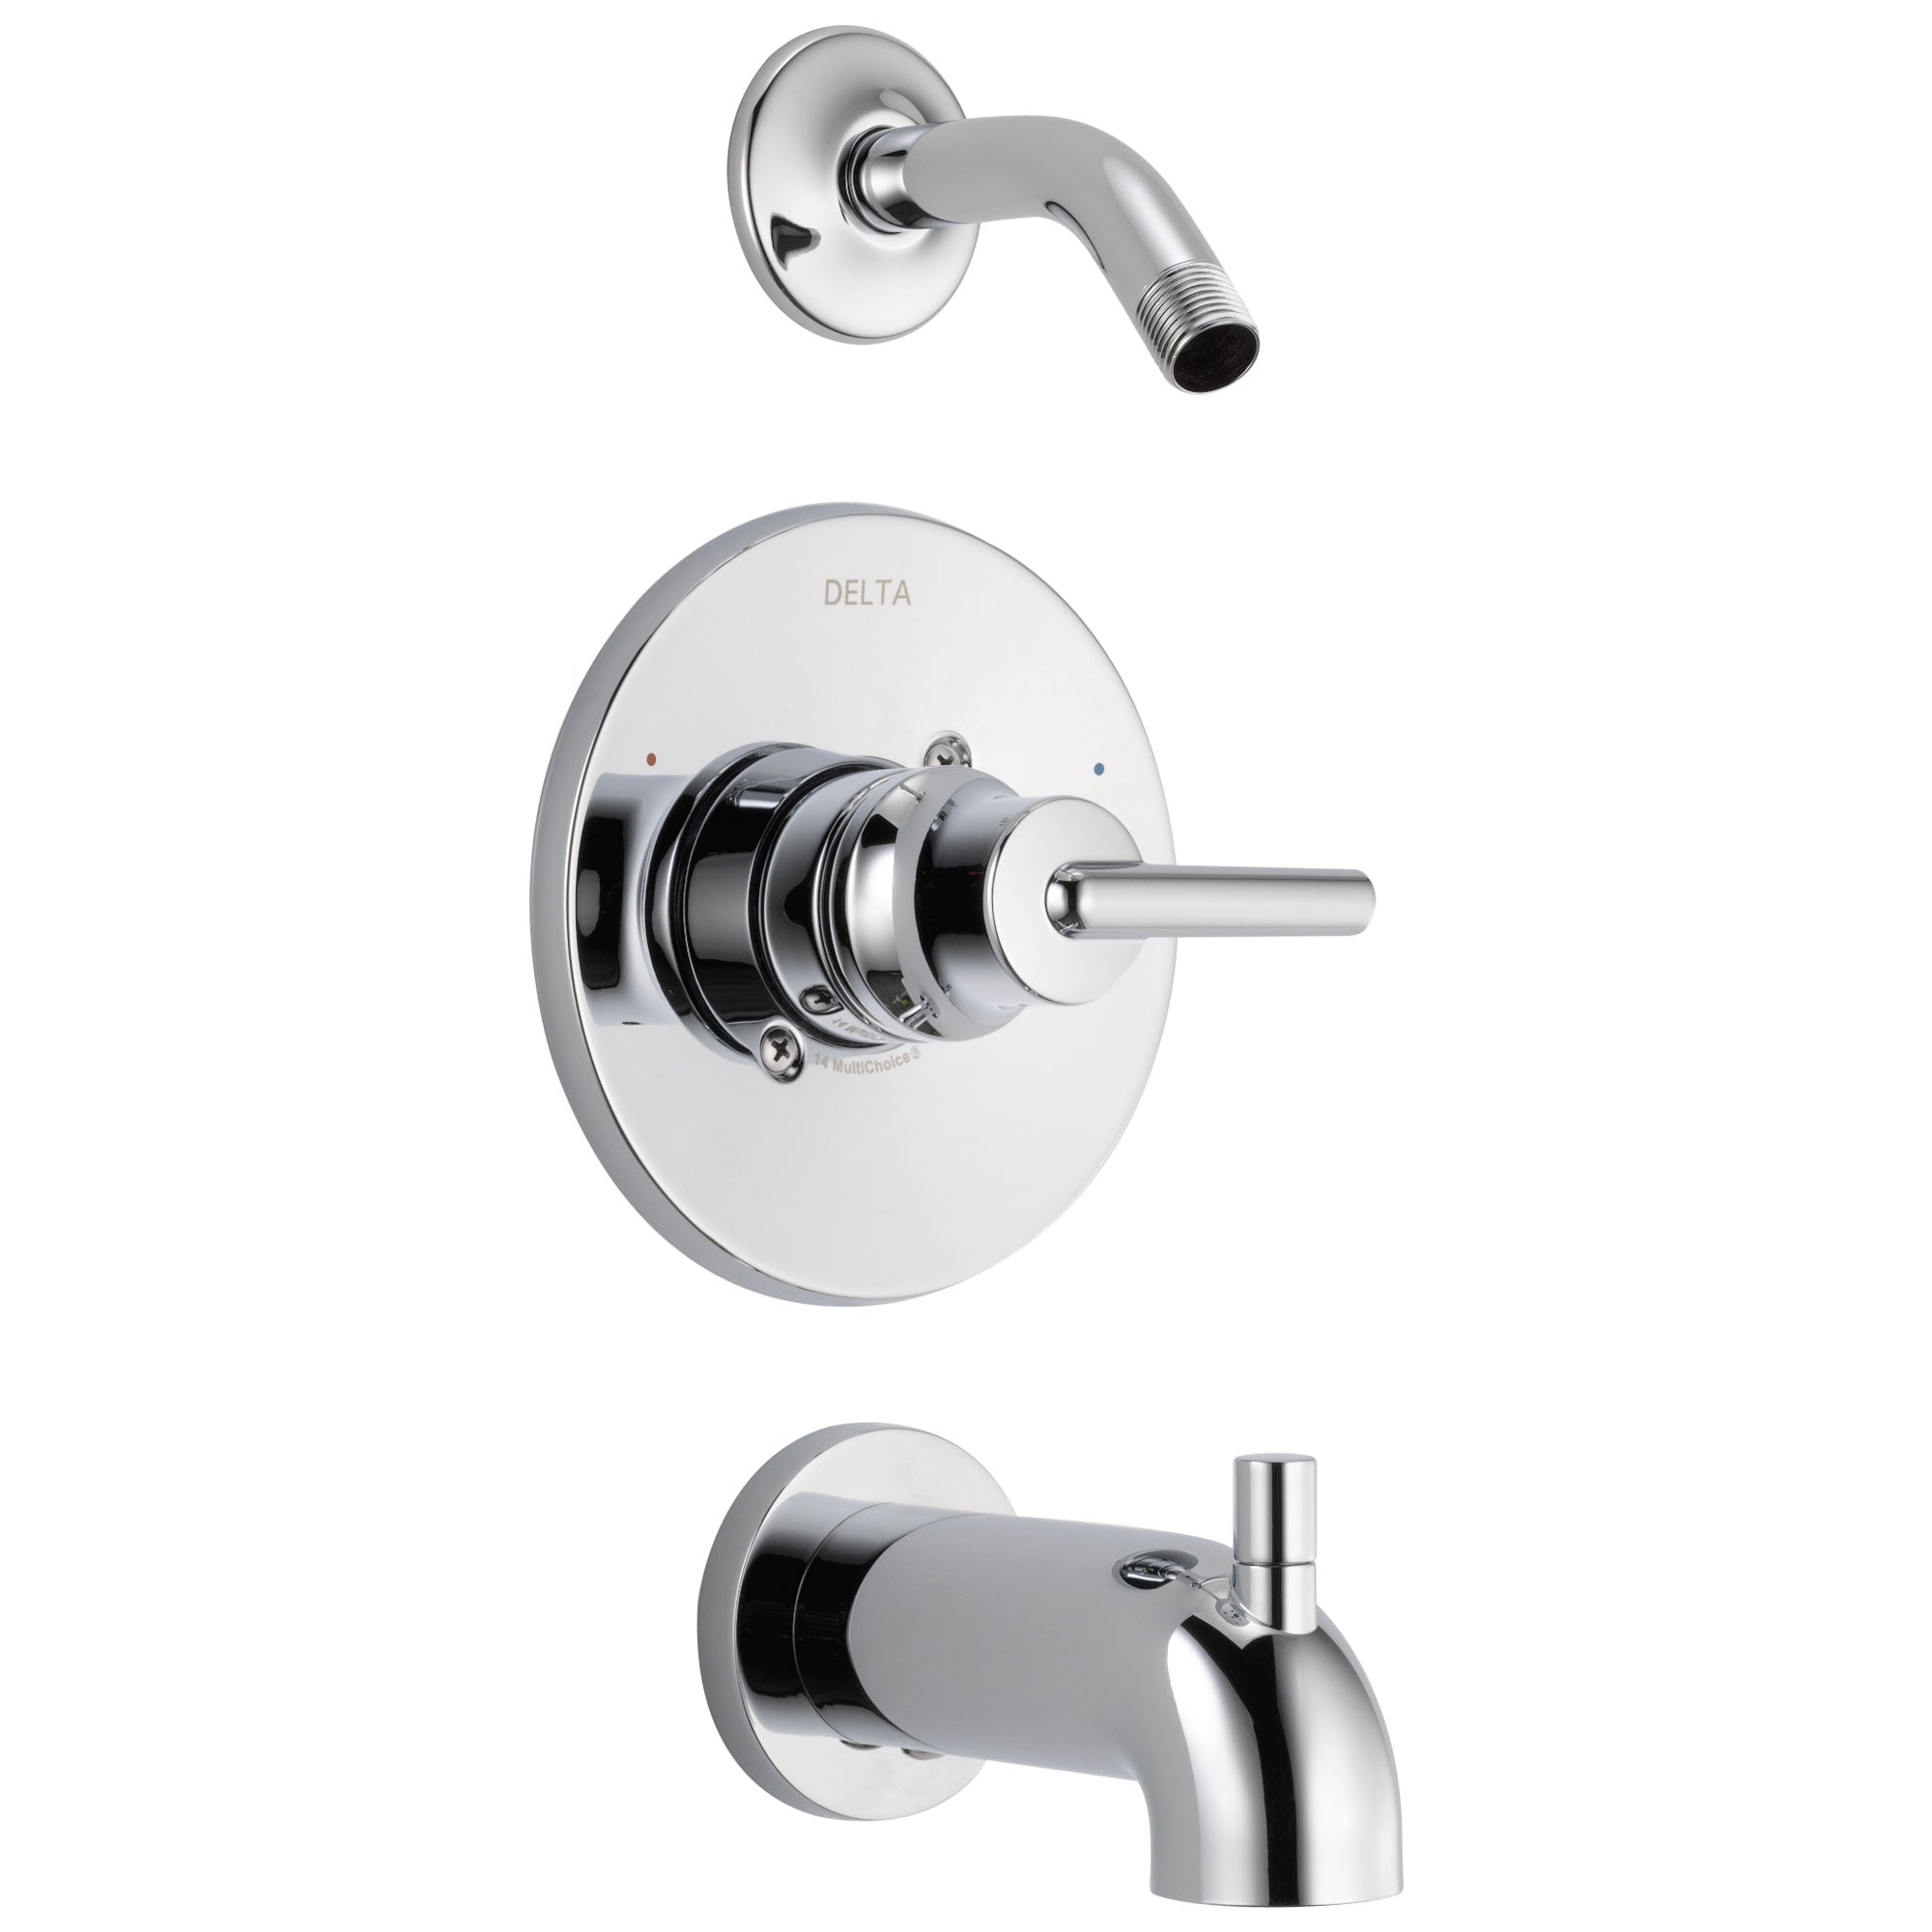 Delta Trinsic Collection Chrome Single Handle Monitor 14 Tub and Shower Combination Faucet Trim Kit - Less Showerhead (Valve Sold Separately) 614956